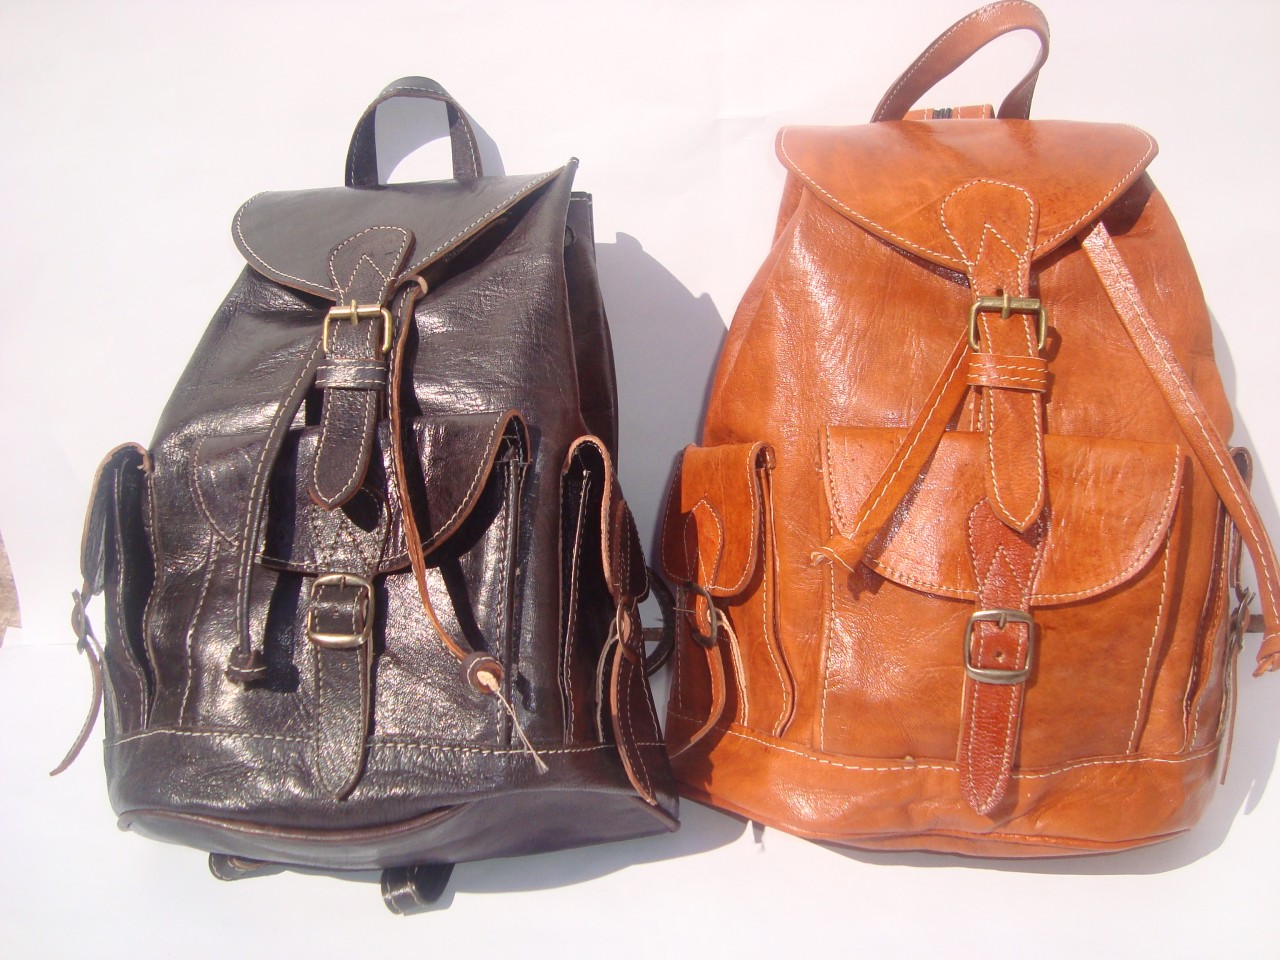 Vintage Leather Backpacks Bj3LO5dL